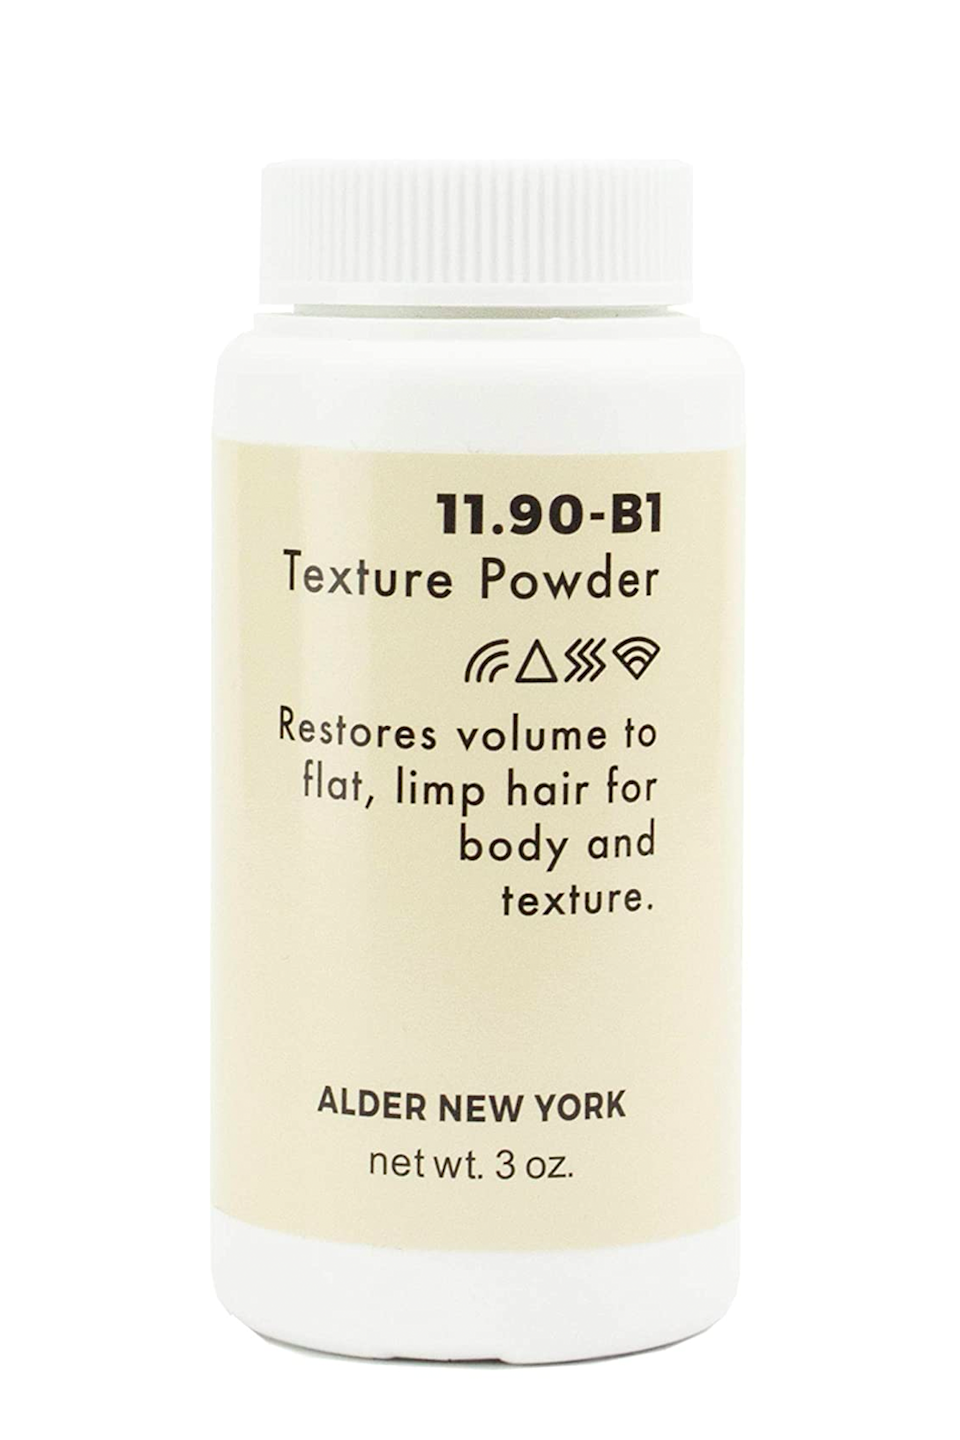 """<p><strong>Alder New York</strong></p><p>amazon.com</p><p><strong>$27.00</strong></p><p><a href=""""https://www.amazon.com/dp/B07H9KDQB7?tag=syn-yahoo-20&ascsubtag=%5Bartid%7C10049.g.34362098%5Bsrc%7Cyahoo-us"""" rel=""""nofollow noopener"""" target=""""_blank"""" data-ylk=""""slk:Shop Now"""" class=""""link rapid-noclick-resp"""">Shop Now</a></p><p>Other than the fact that the packaging is so cute (I mean, <em>look</em> at it), this hair volume powder is also <strong>loved for its ability to add body and volume with ease</strong>. The magic is chalked up to the kaolin and sea clay in the formula (which is 100 percent natural, BTW), both of which help add instant <a href=""""https://www.cosmopolitan.com/style-beauty/beauty/a31956130/hair-types/"""" rel=""""nofollow noopener"""" target=""""_blank"""" data-ylk=""""slk:texture"""" class=""""link rapid-noclick-resp"""">texture</a>.</p>"""